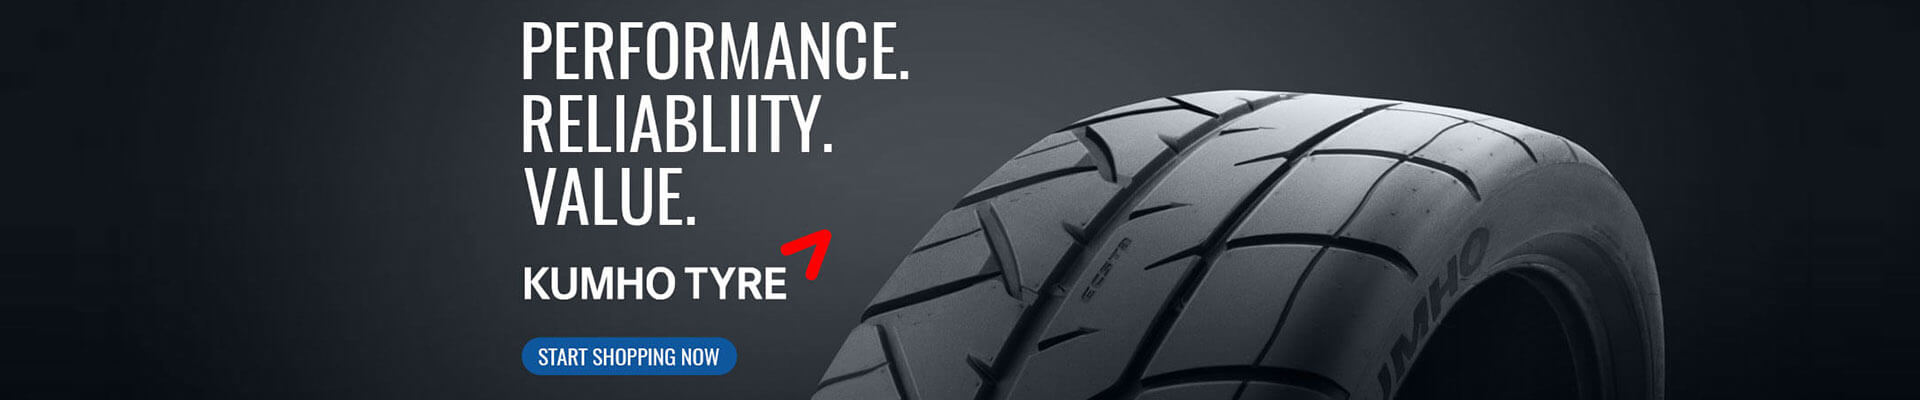 Kumho Tyre: Performance, Reliability, Value